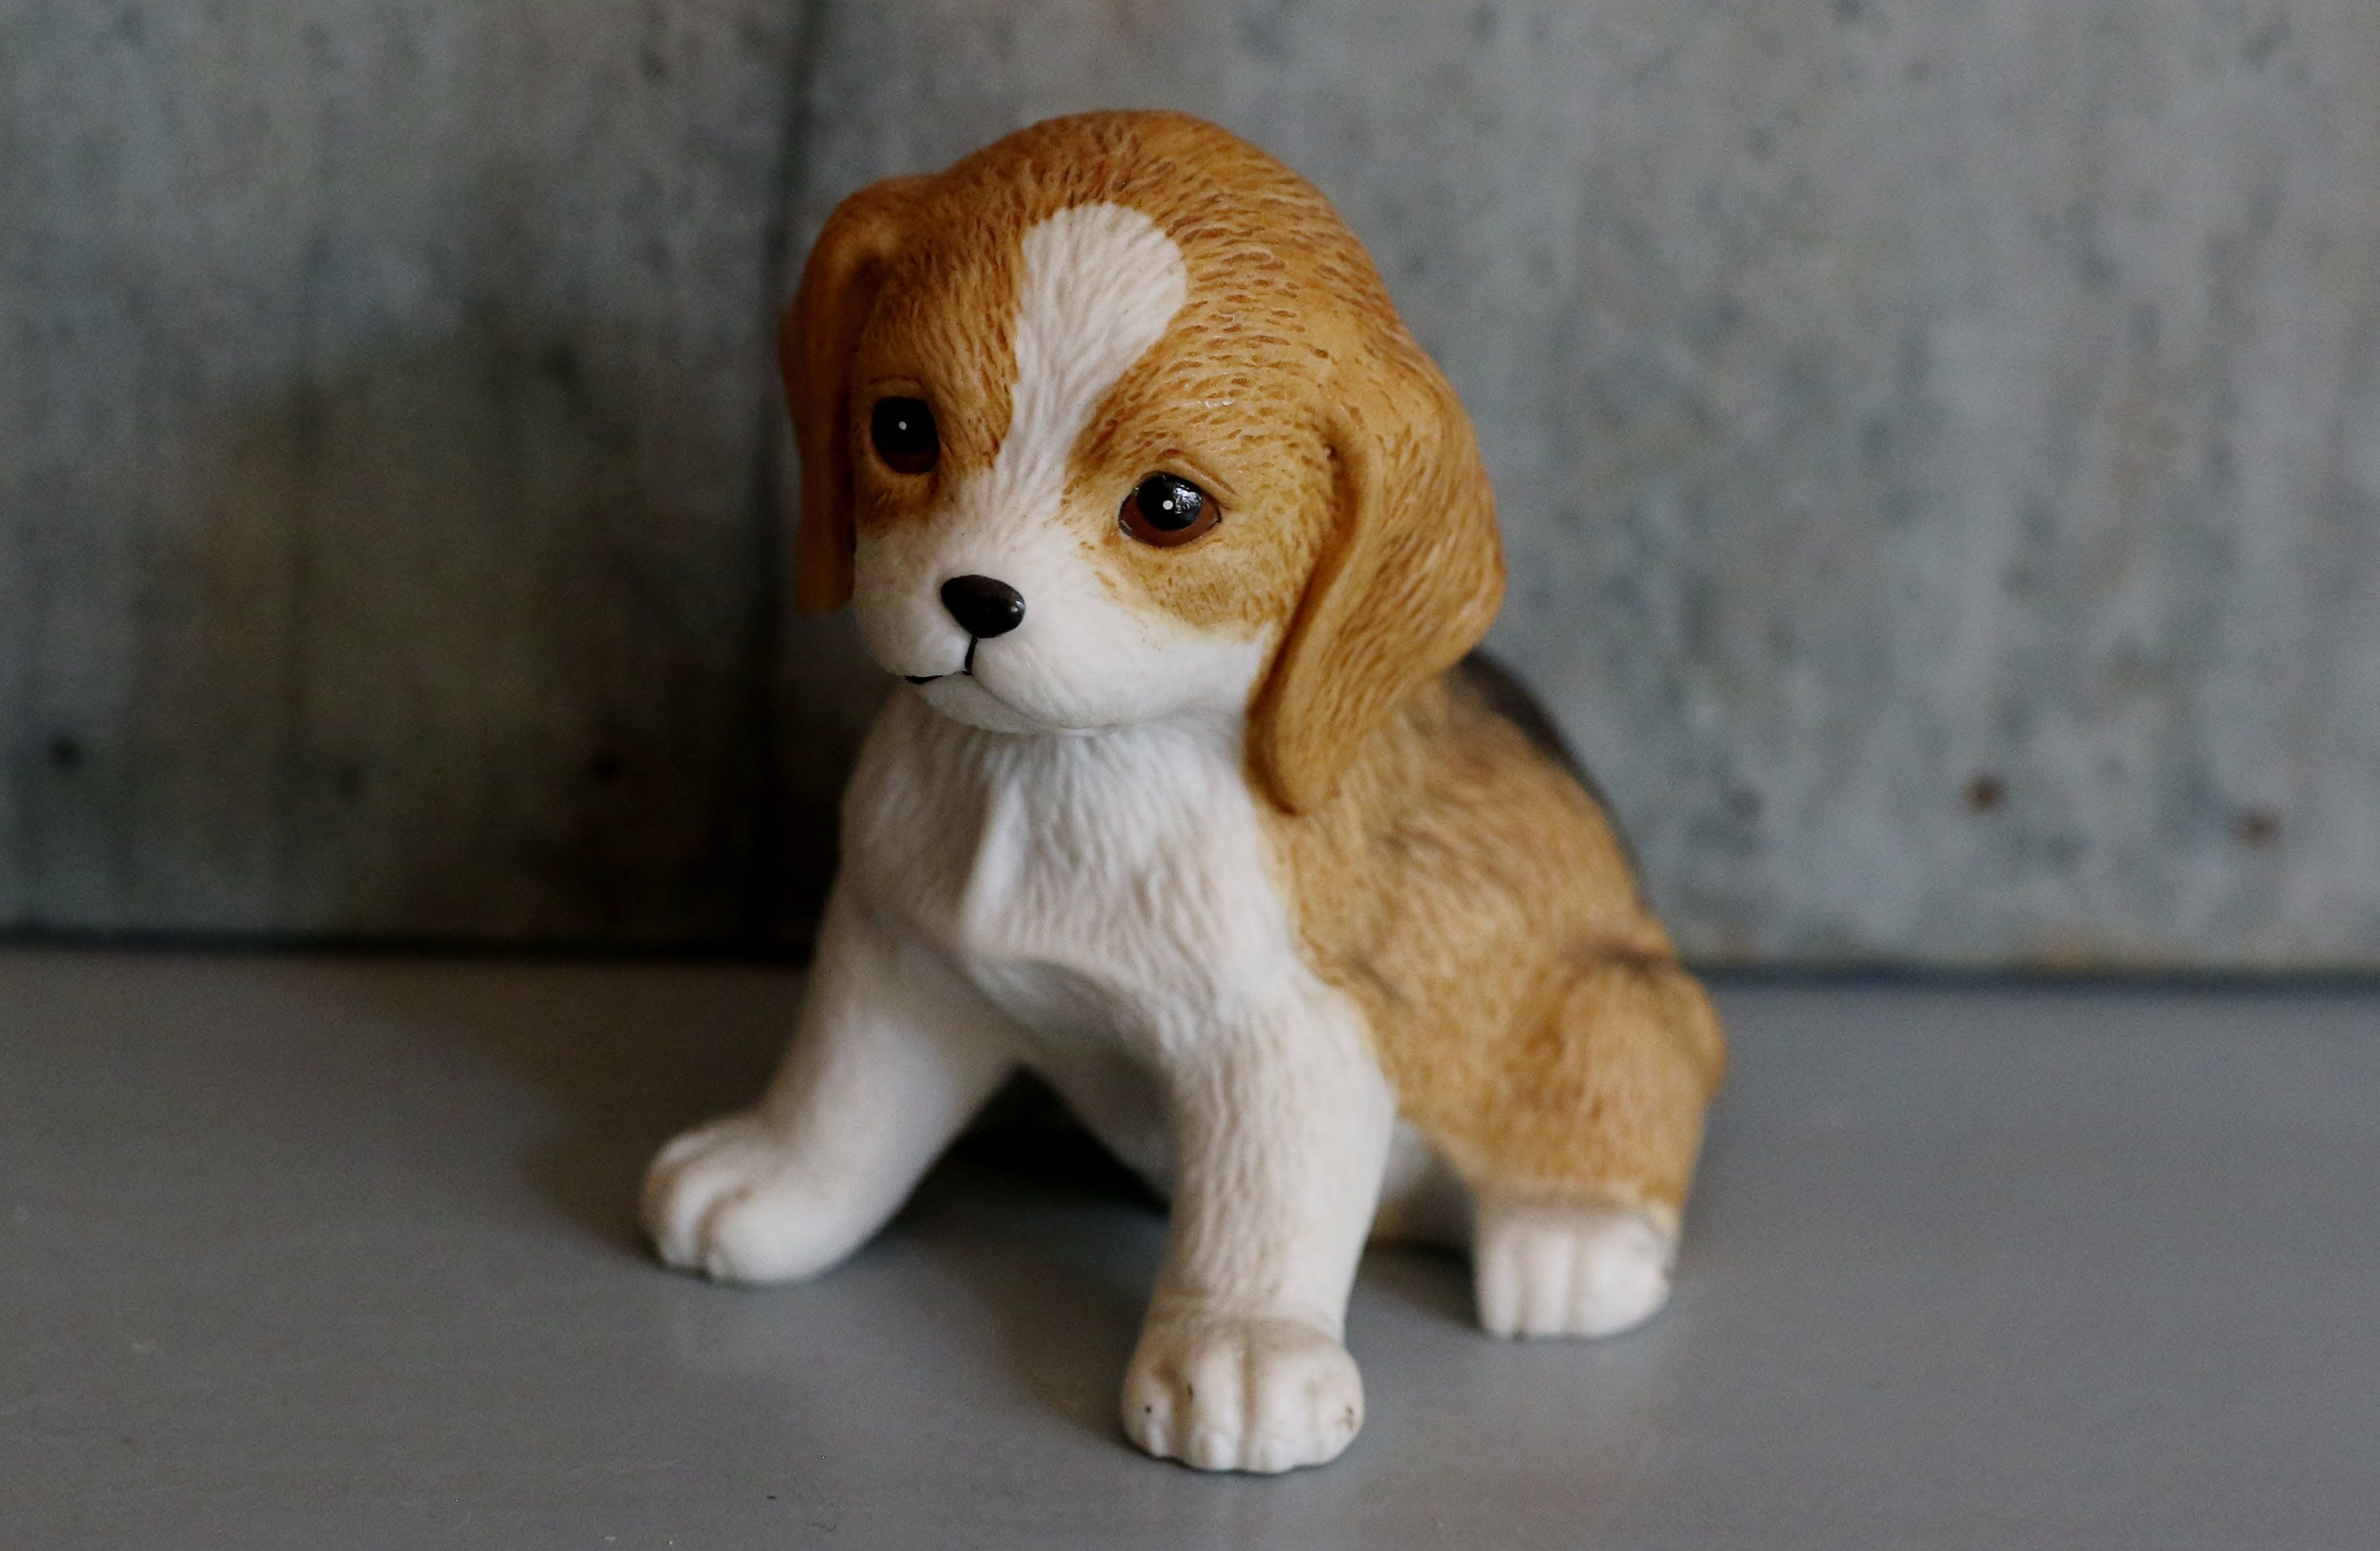 Vintage Beagle Puppy Dog Figurine By Homco Home Interiors 8828